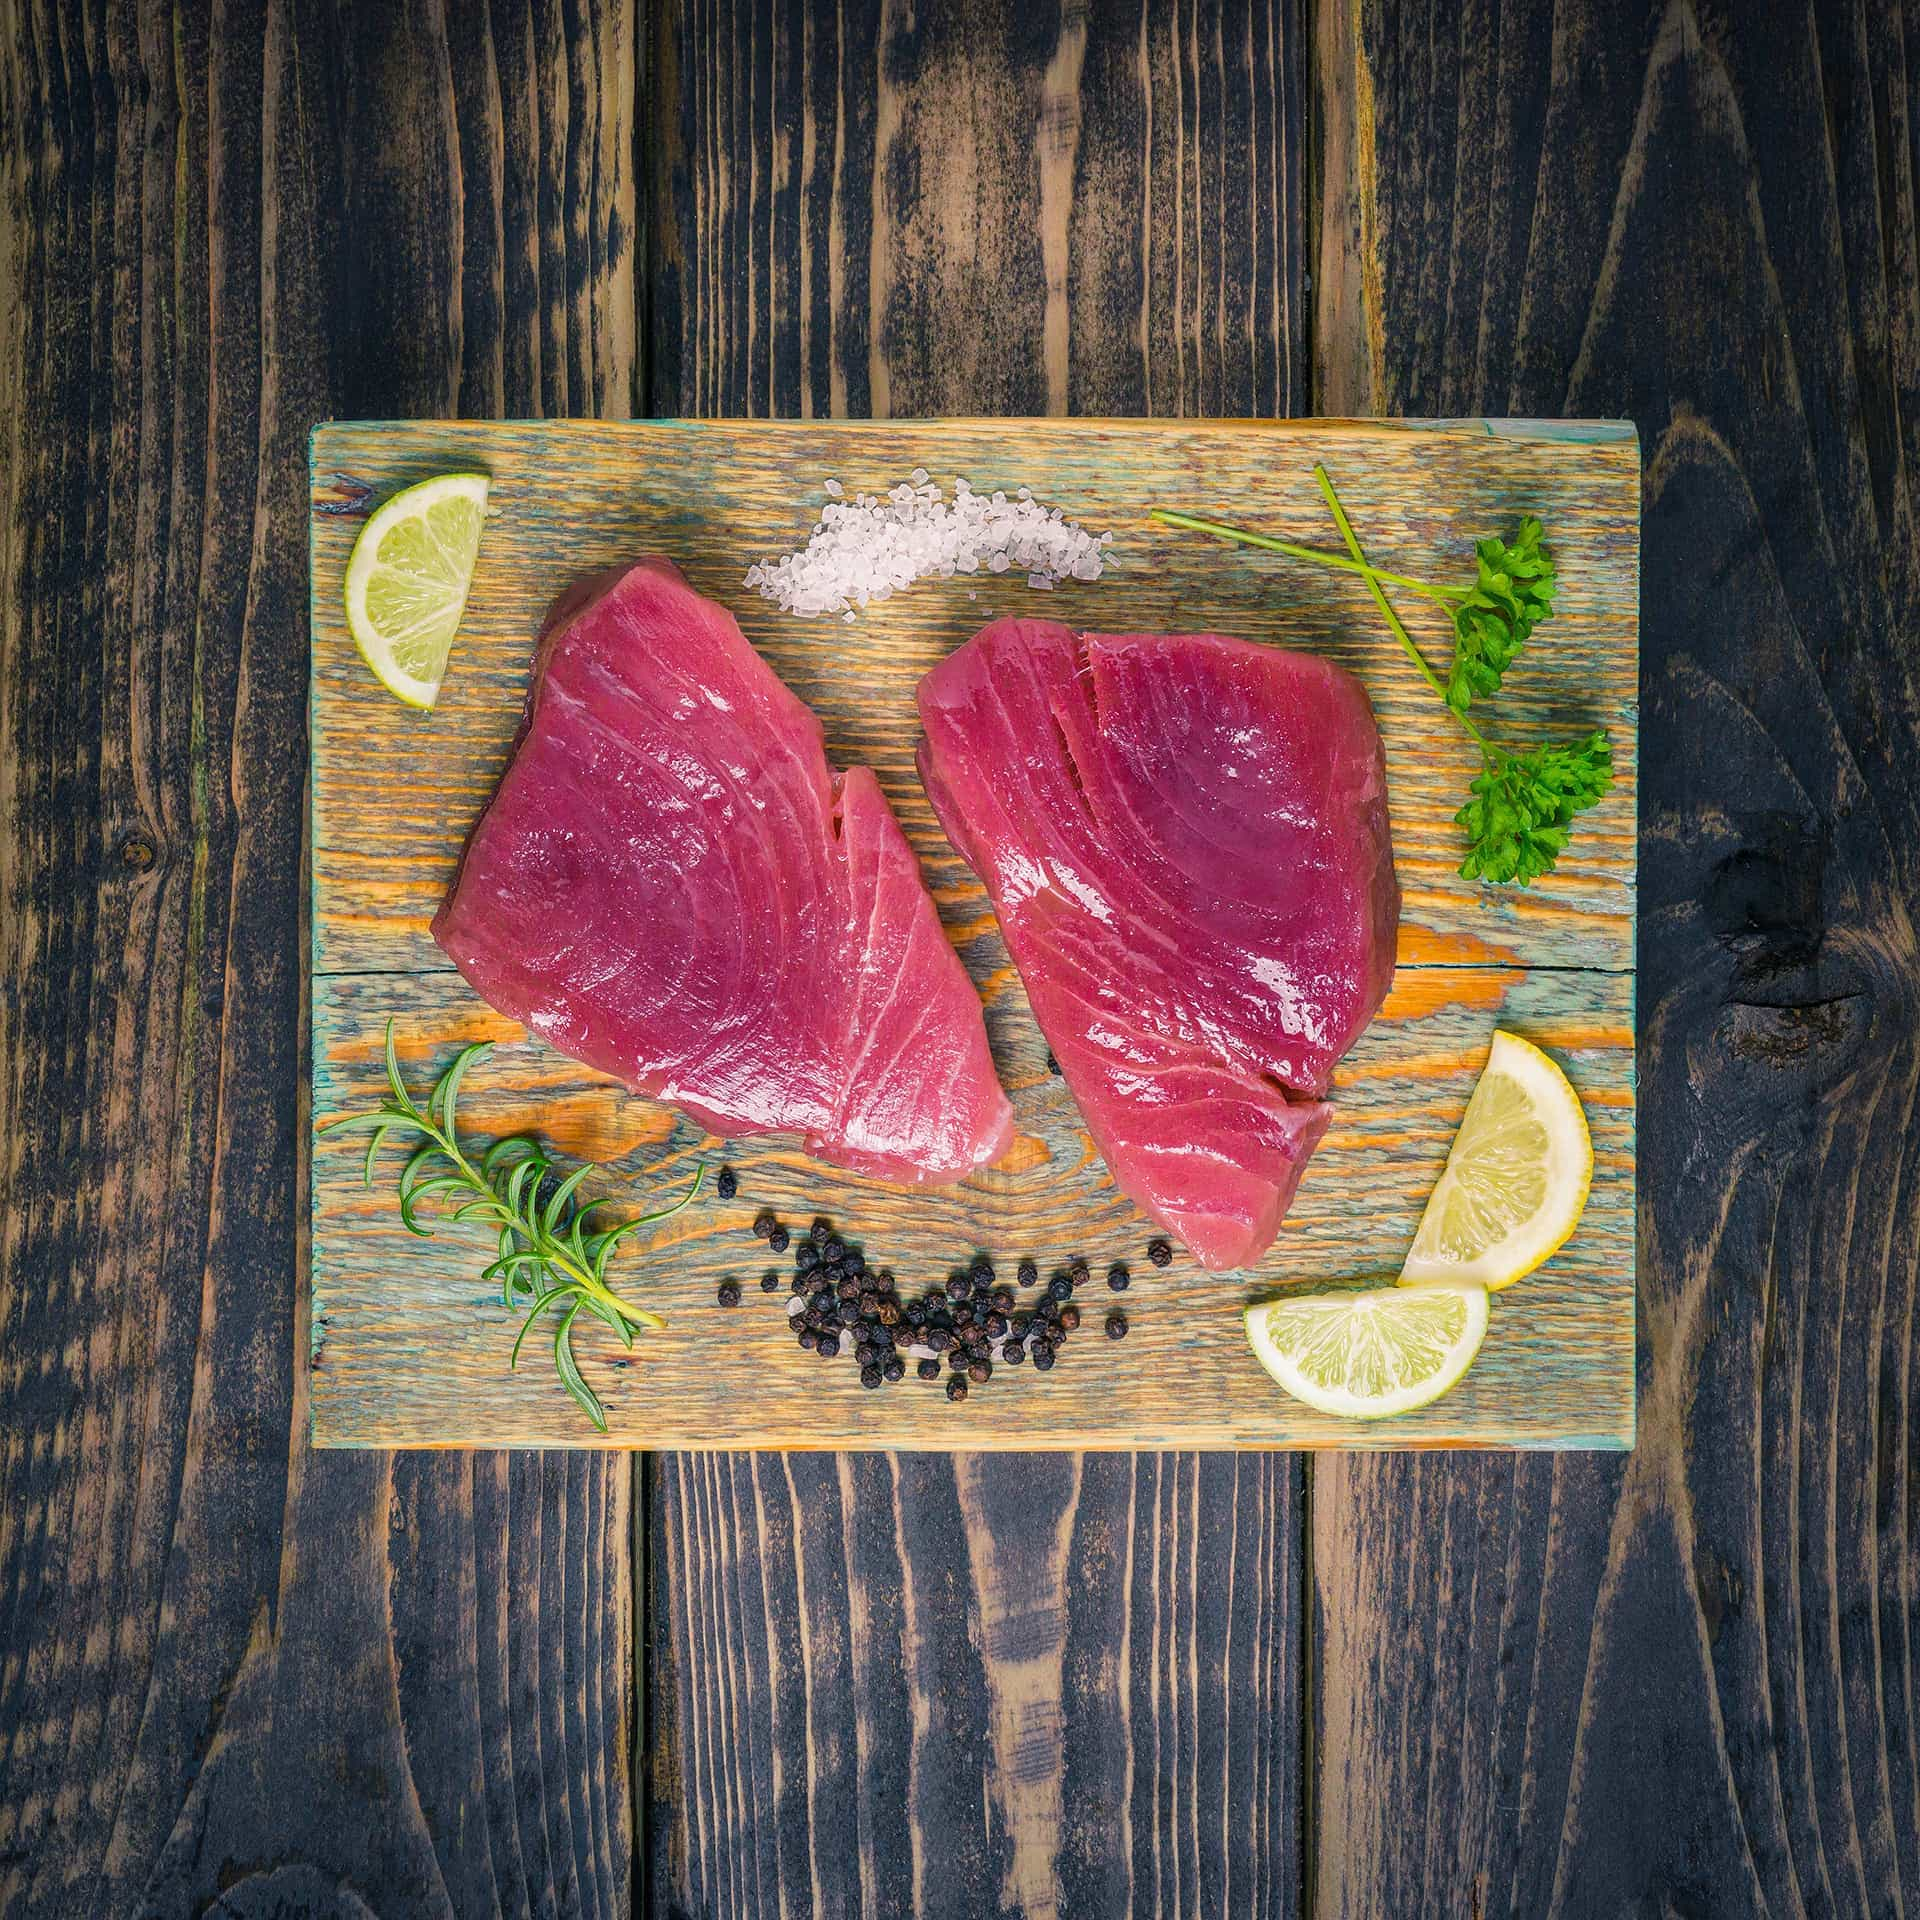 Tuna steaks on a chopping board